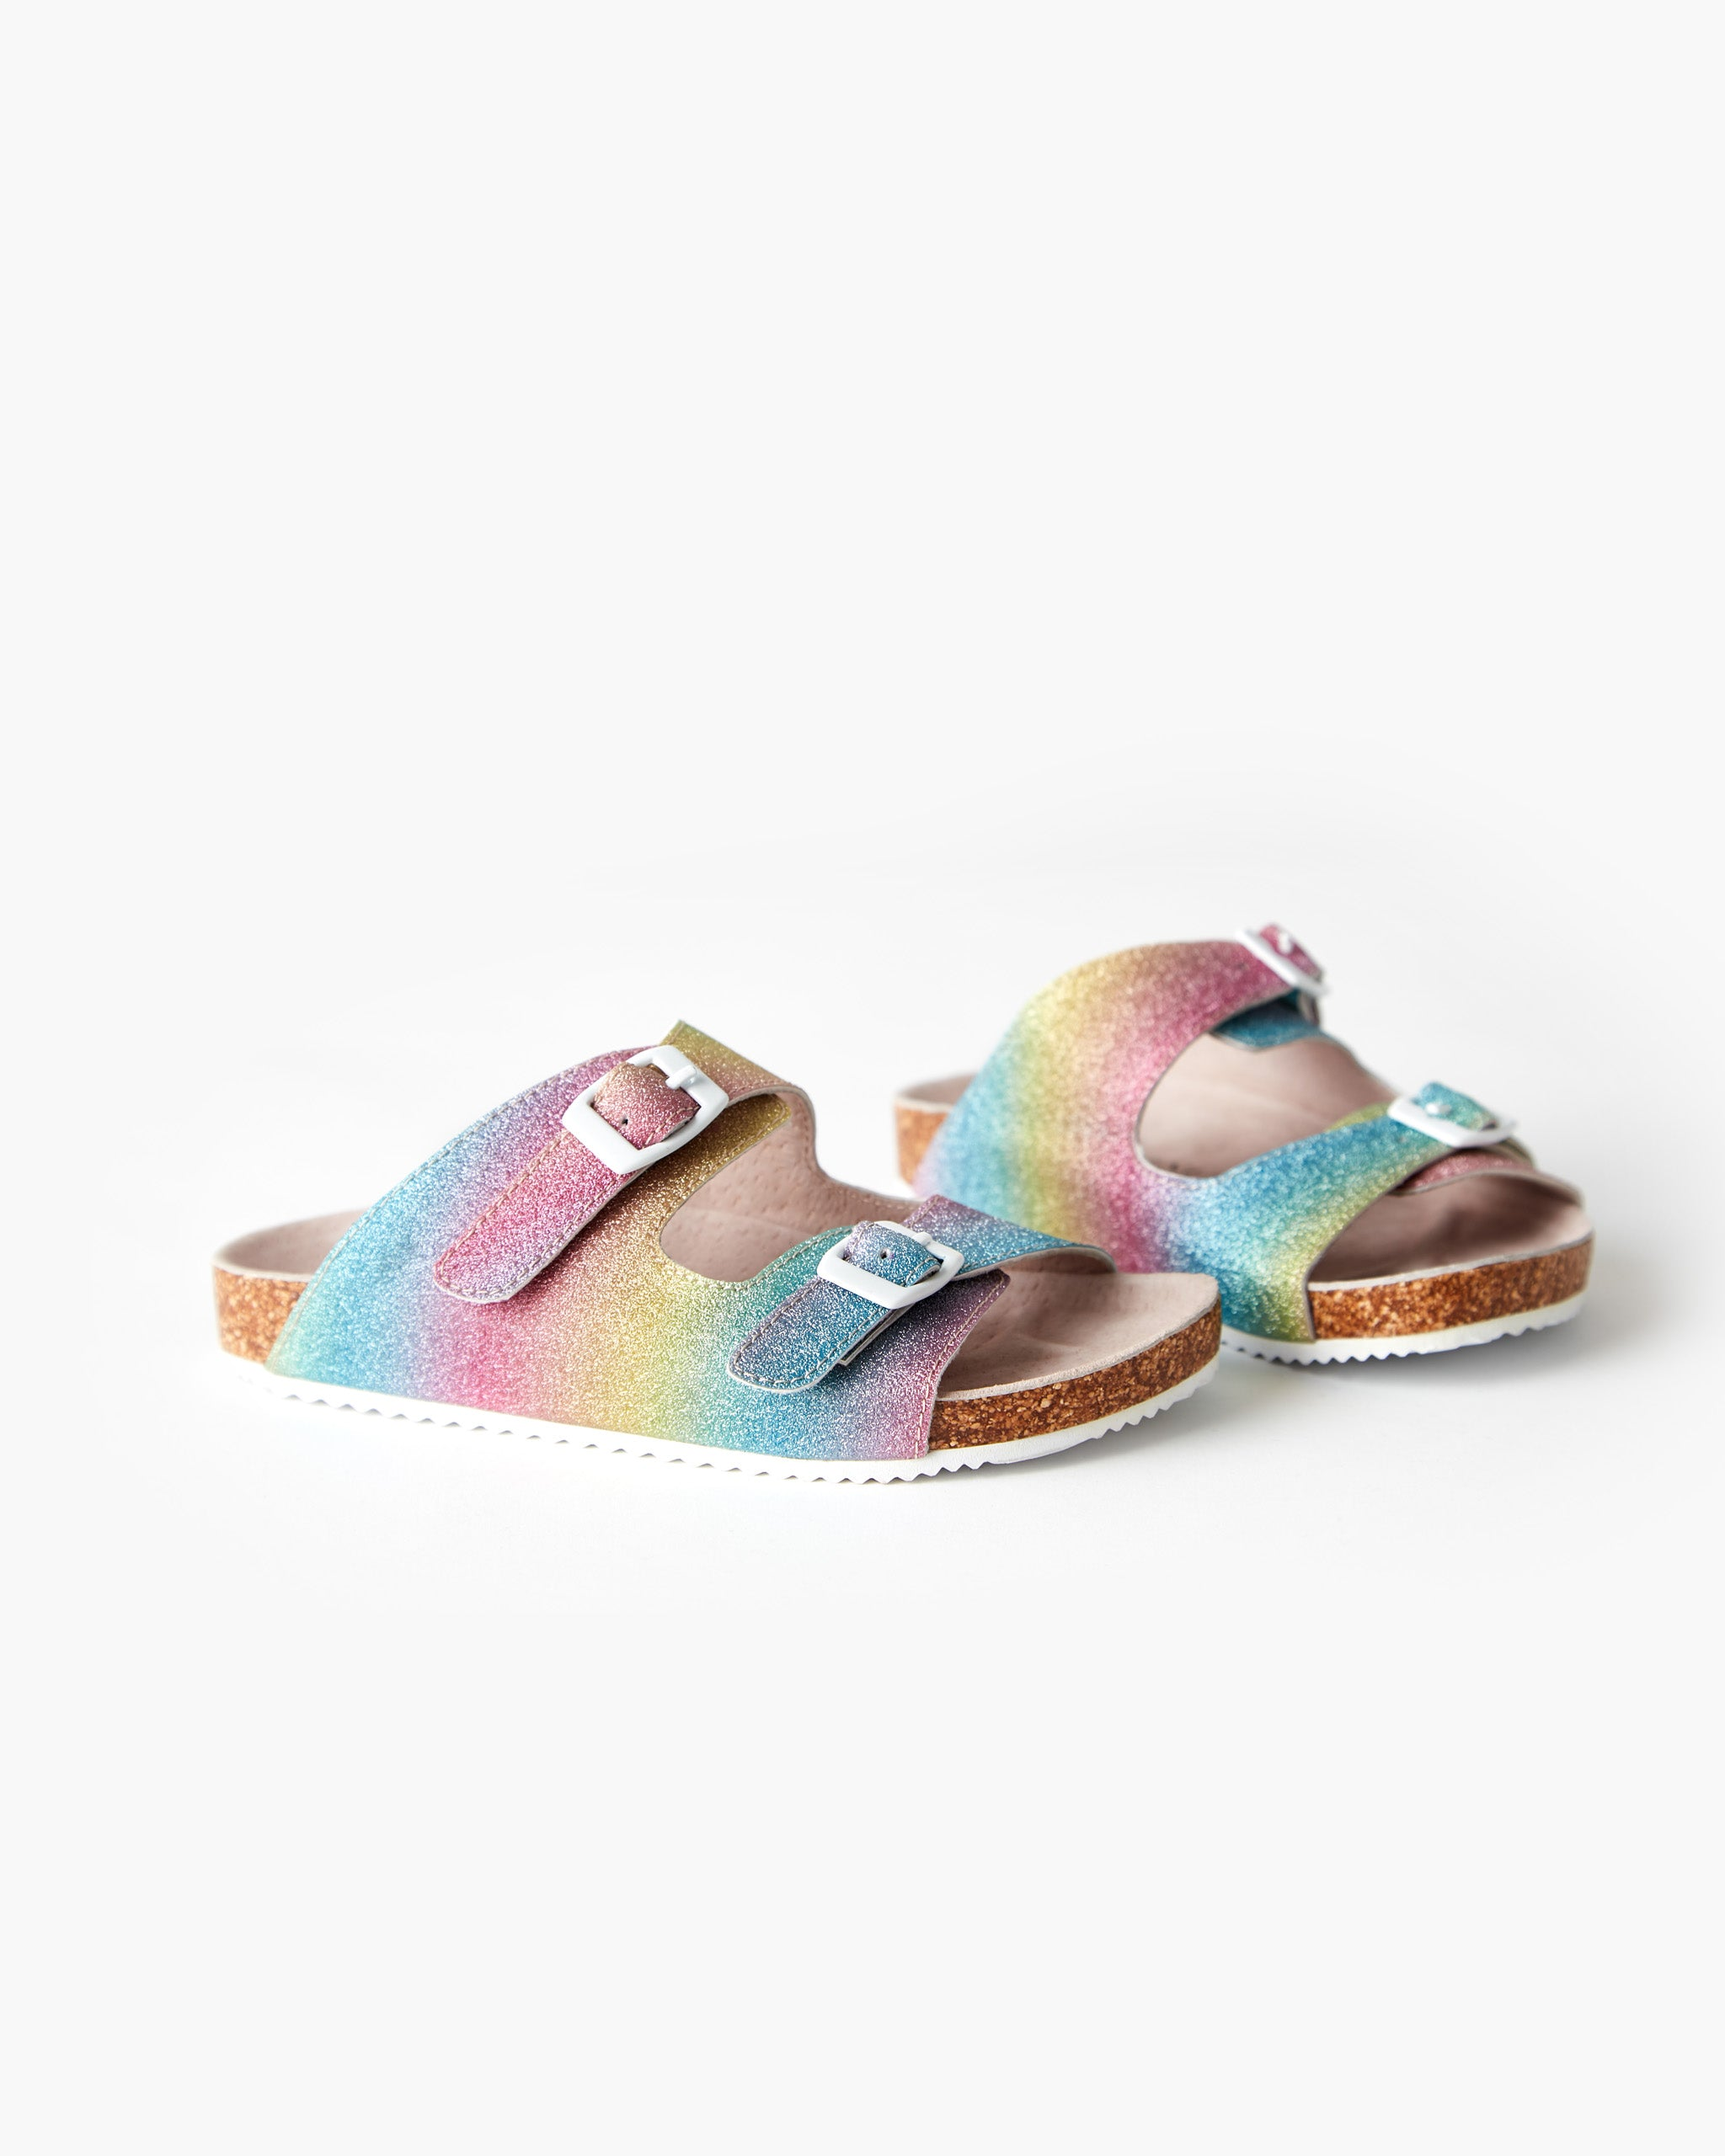 Bailey Mini Slide - Rainbow Shimmer